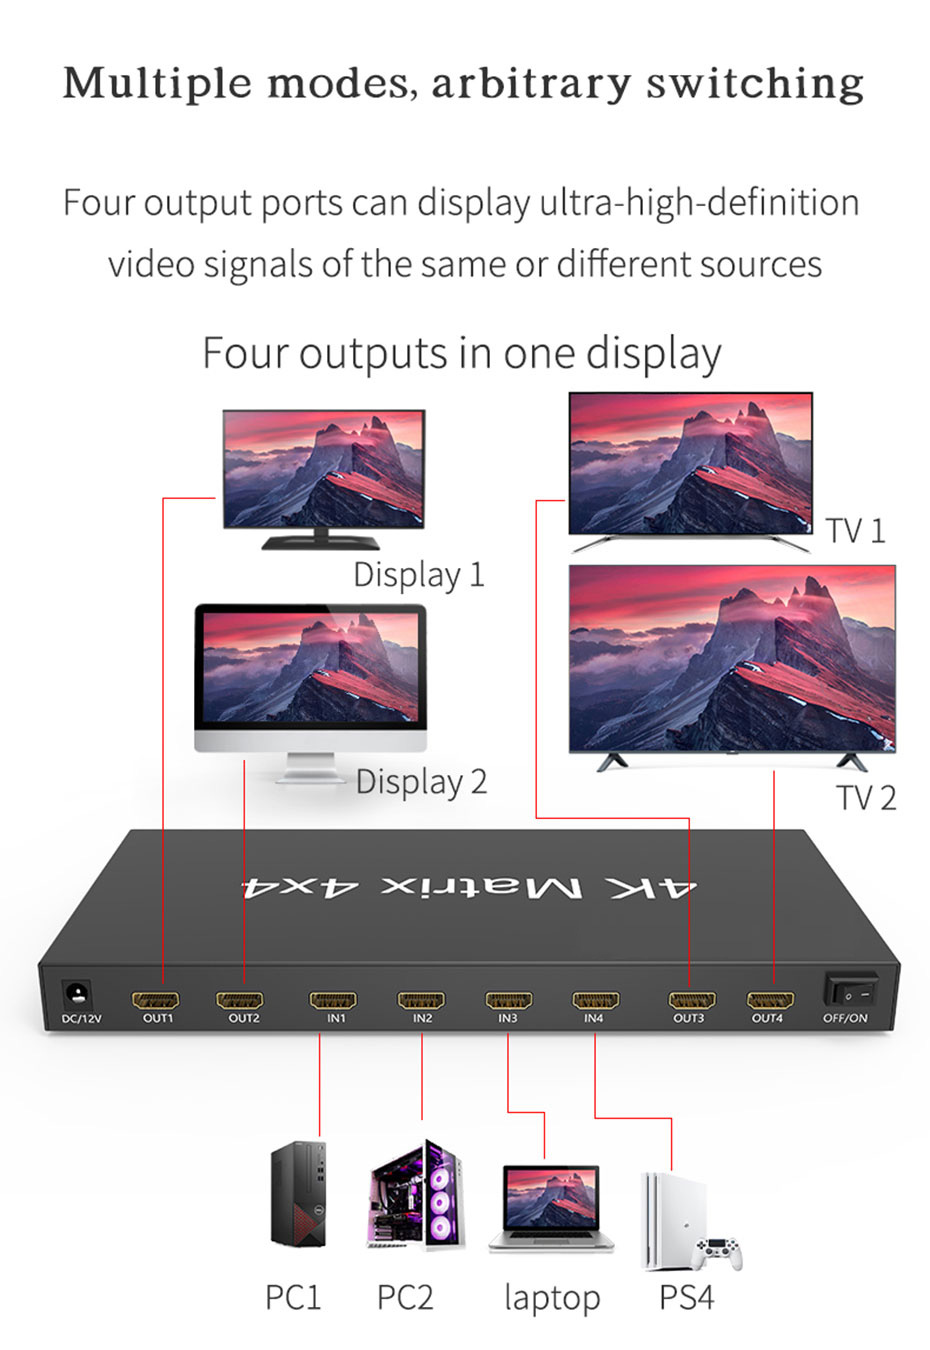 4 port HDMI matrix 4 in 4 out 414HN supports a variety of display modes, arbitrary switching